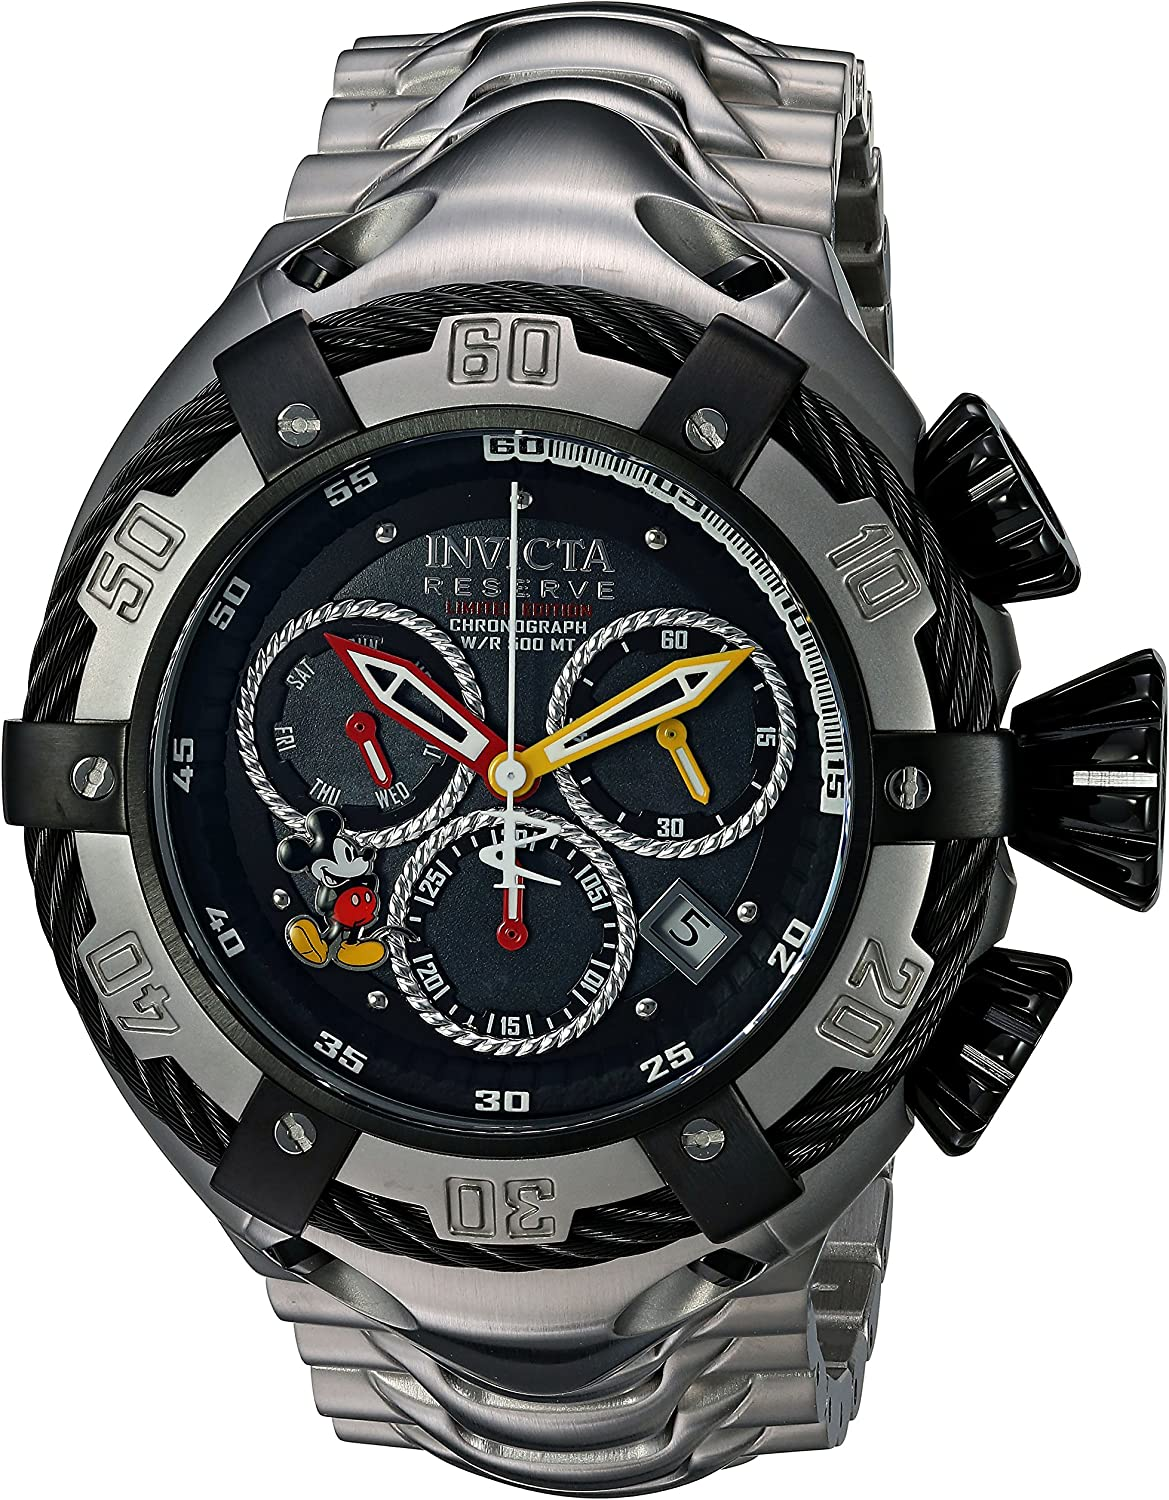 Invicta Men s Disney Limited Edition Quartz Watch with Stainless-Steel Strap, Silver, 29 Model 24658